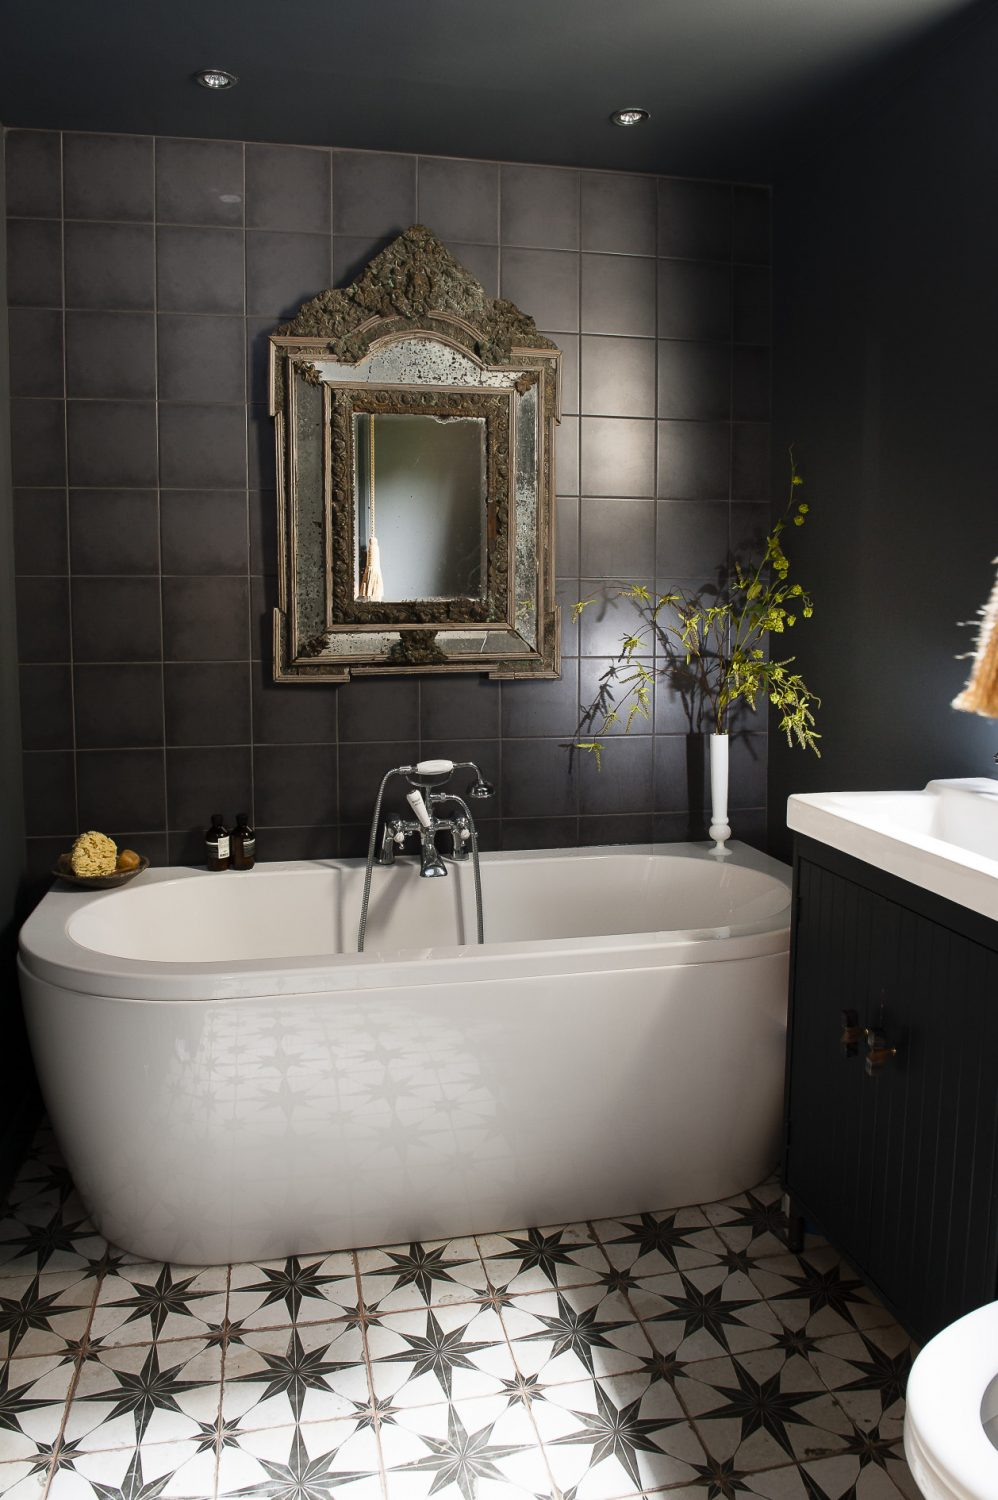 Featuring a deep contemporary oval bath with a central hand shower, star design floor tiles on the characteristic bold scale, plus a basin atop a black painted unit, the bathroom, while relatively small, packs just as much dramatic punch as the rest of the flat.